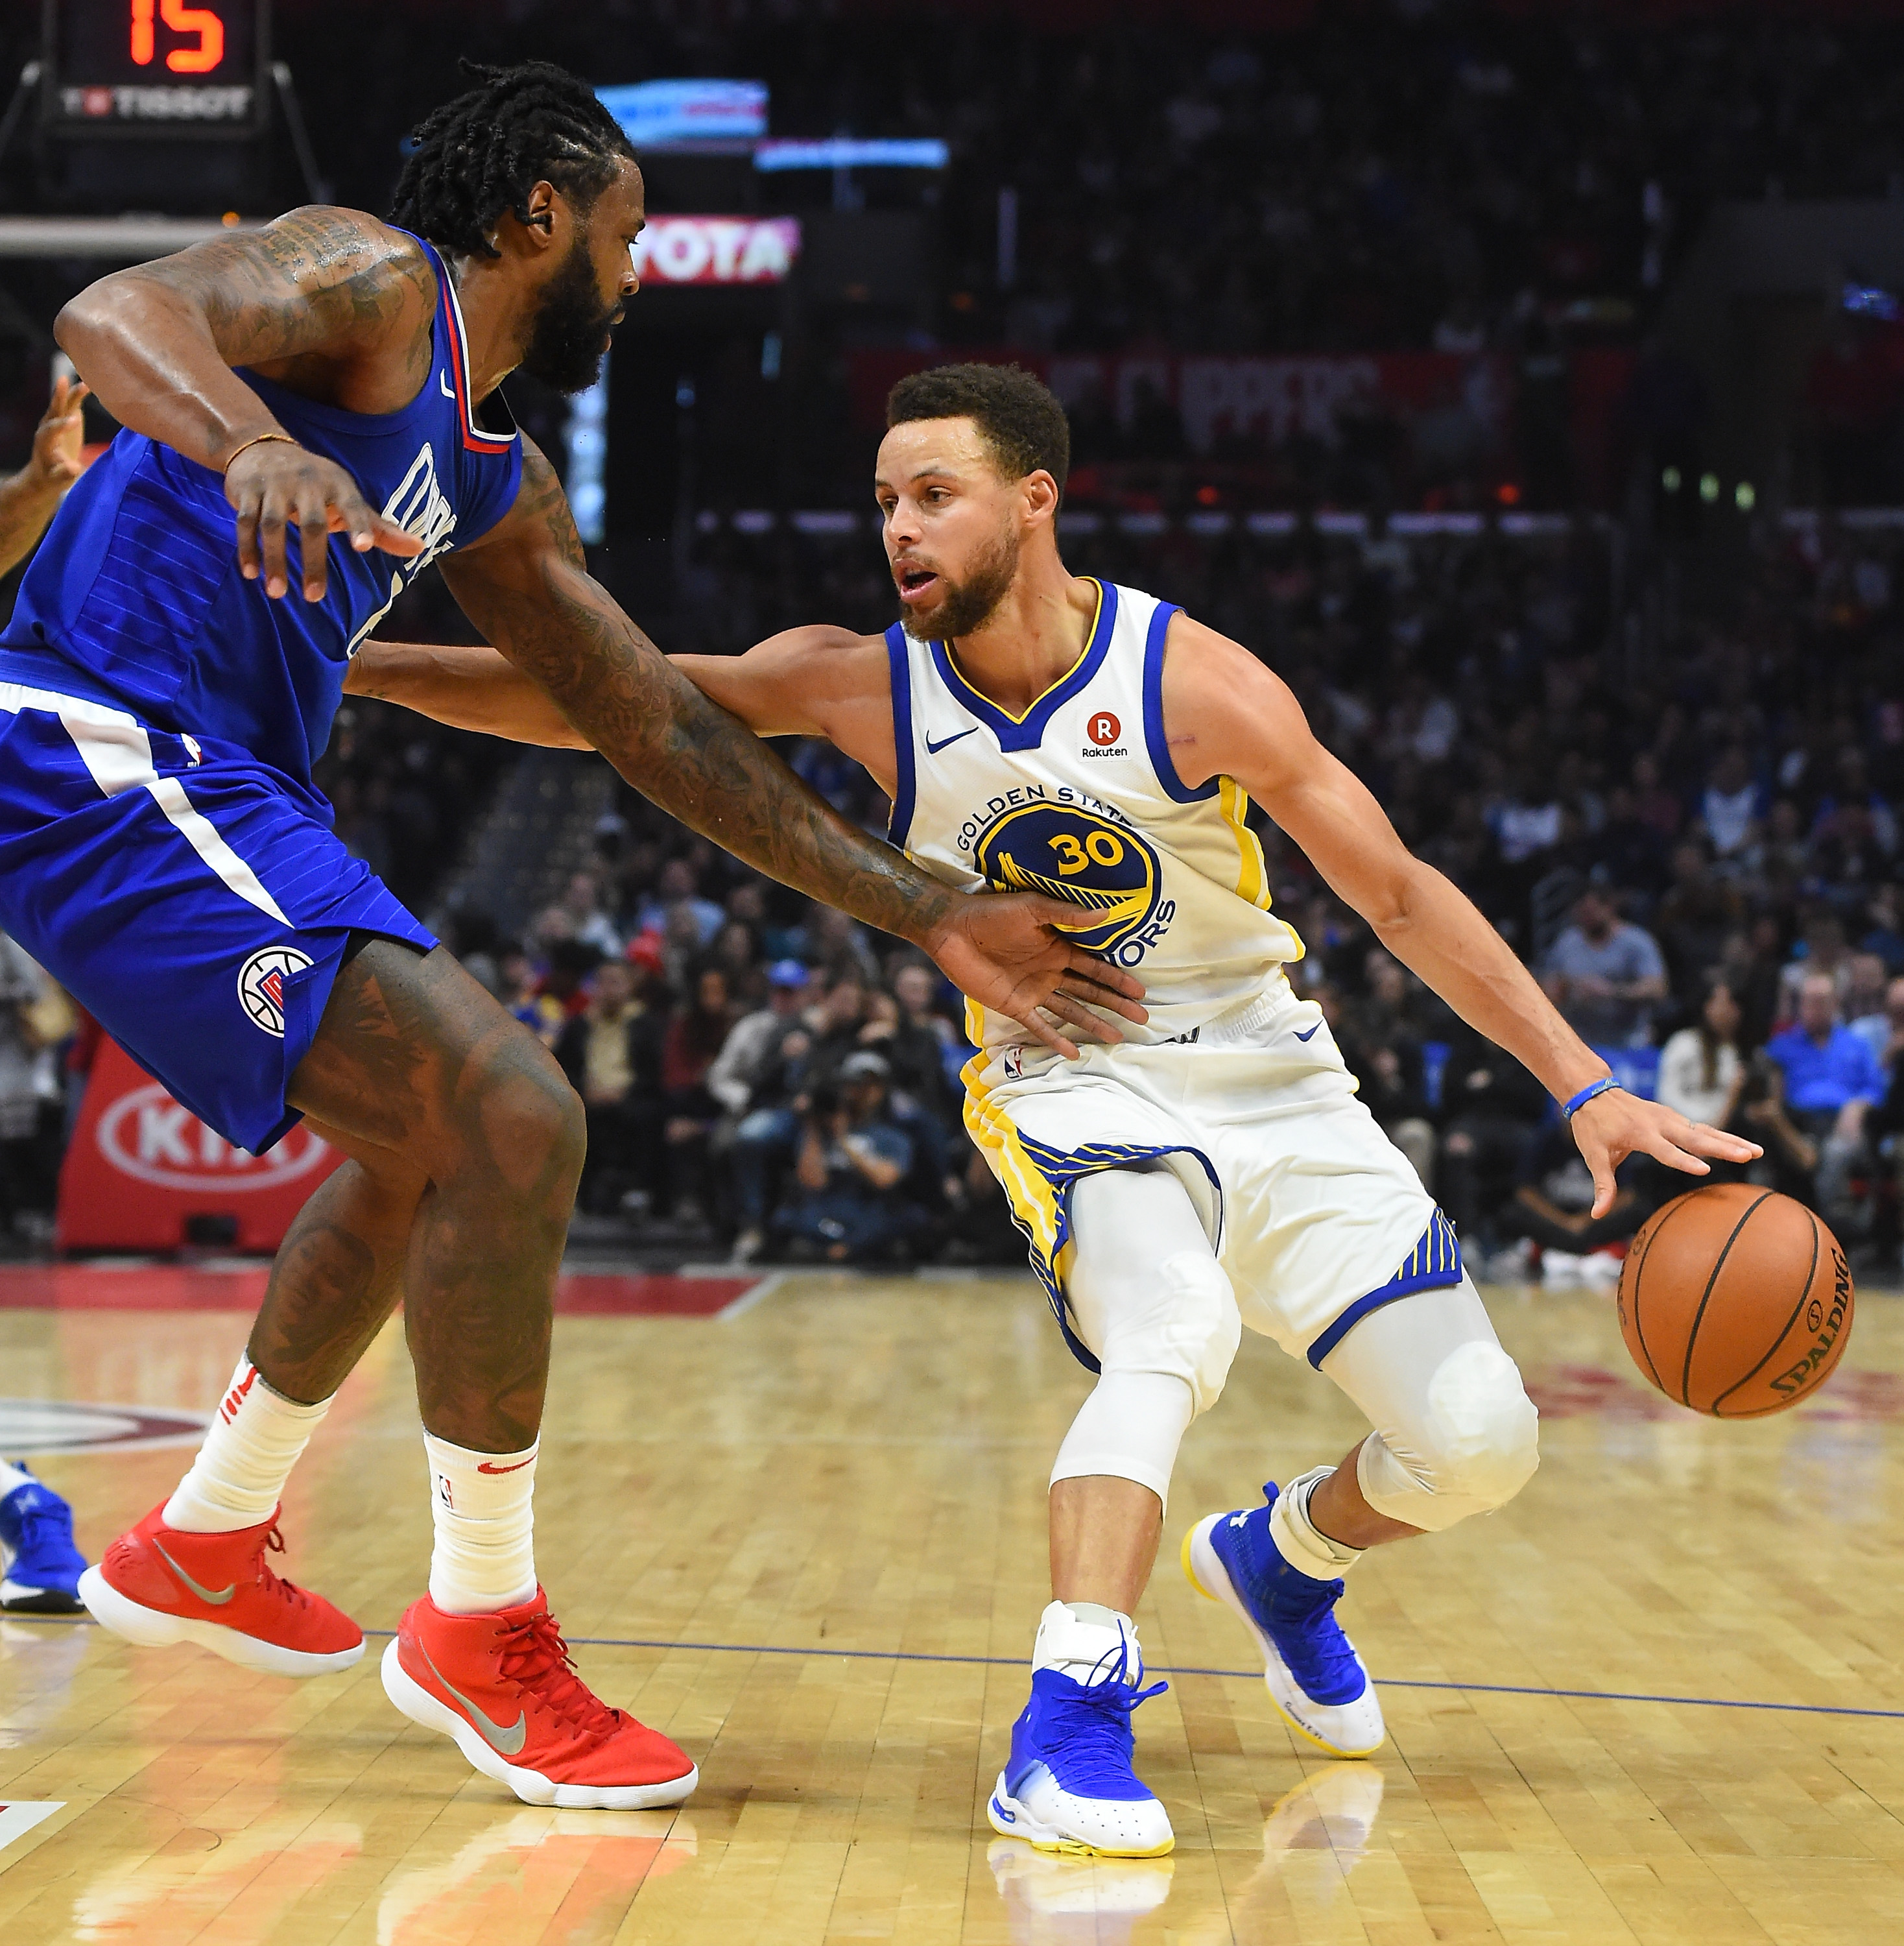 Denver Nuggets Vs Golden State Warriors Game 6 Score: Town's Finest Week 6: Steph Curry Is Back And It's Glorious